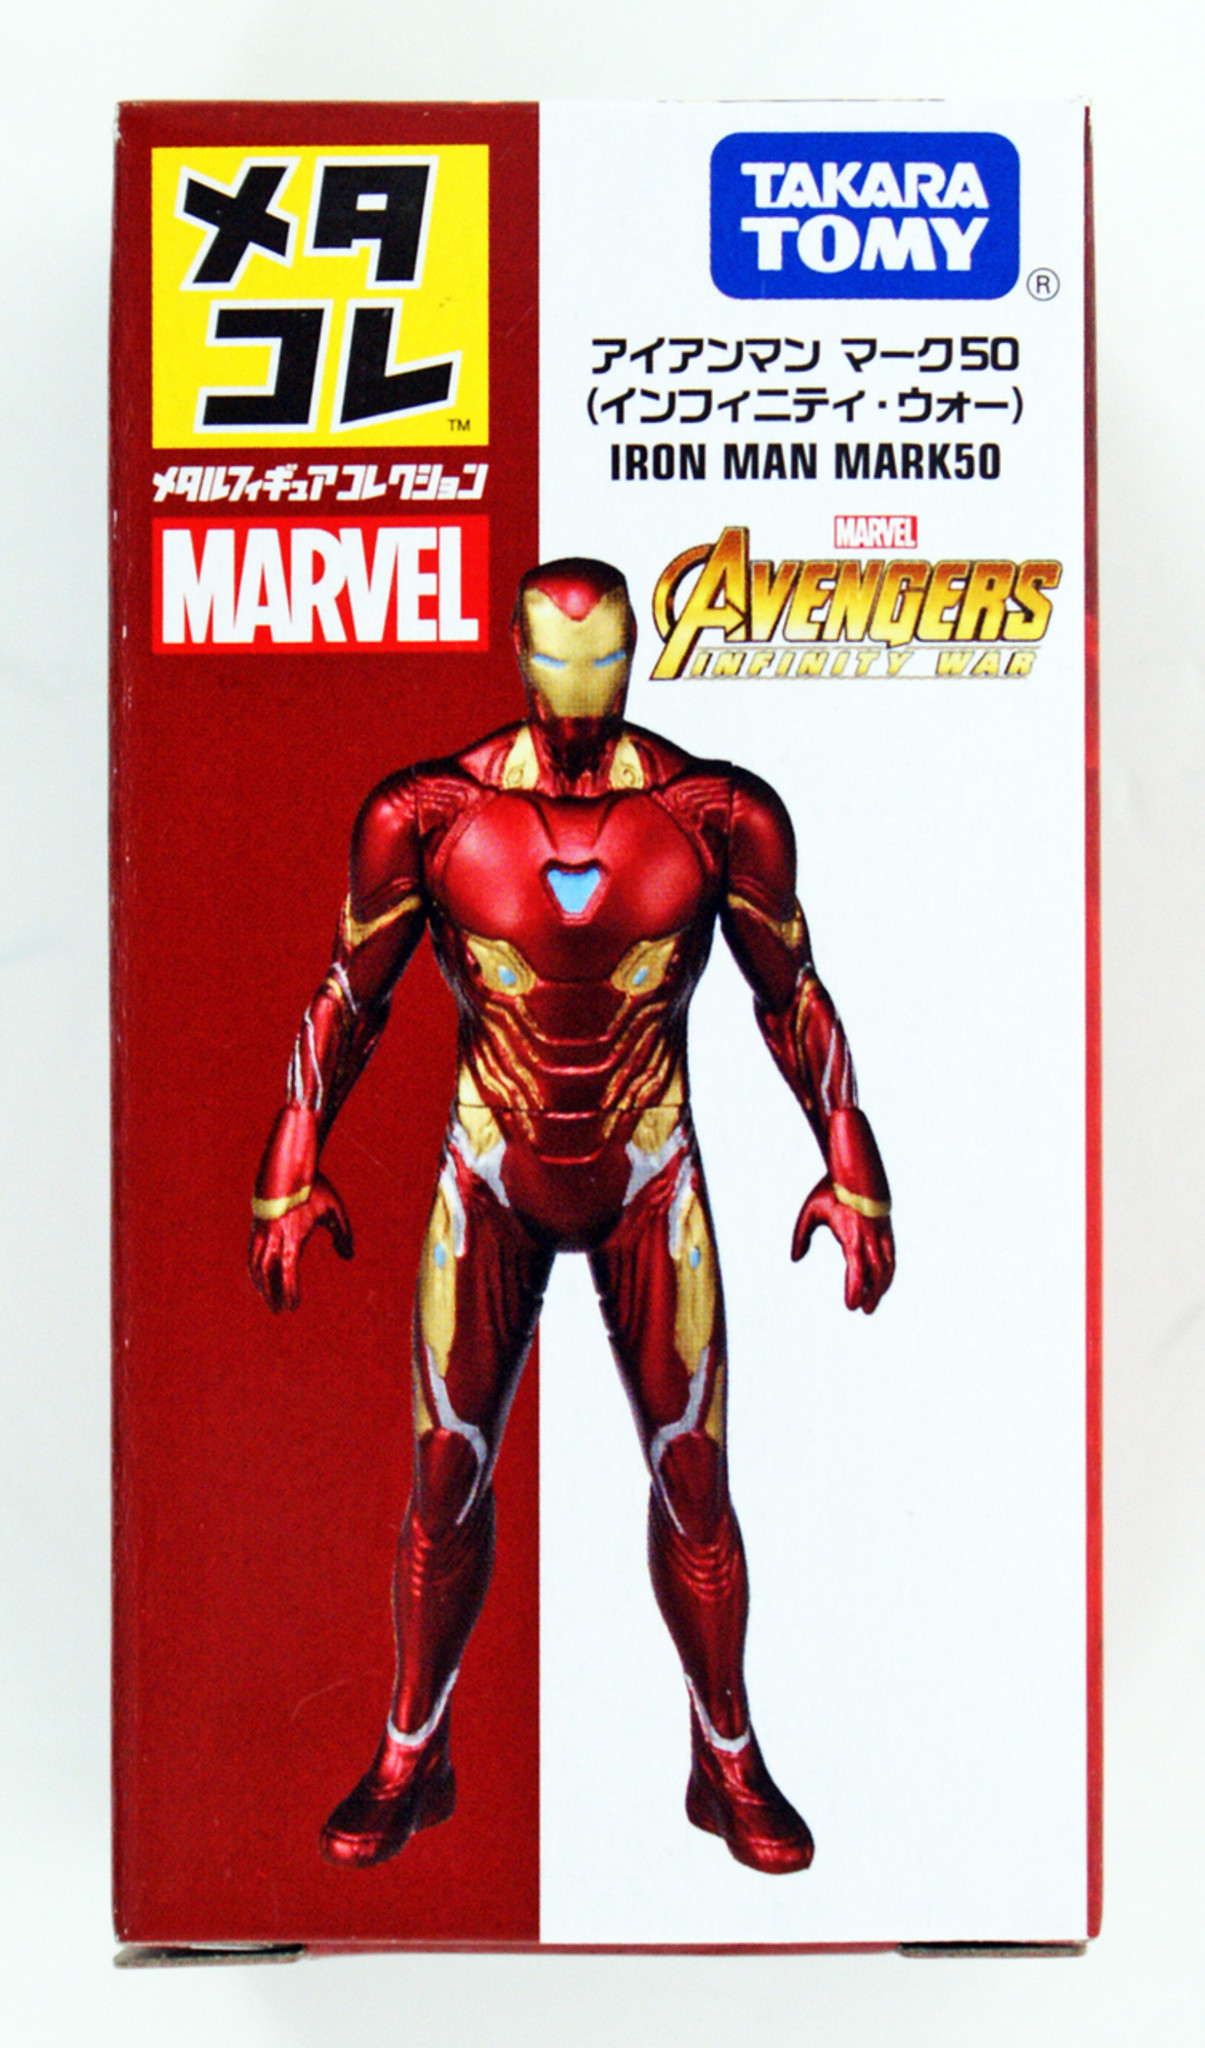 takara tomy marvel iron man mark 50 infinity wa | plazajapan